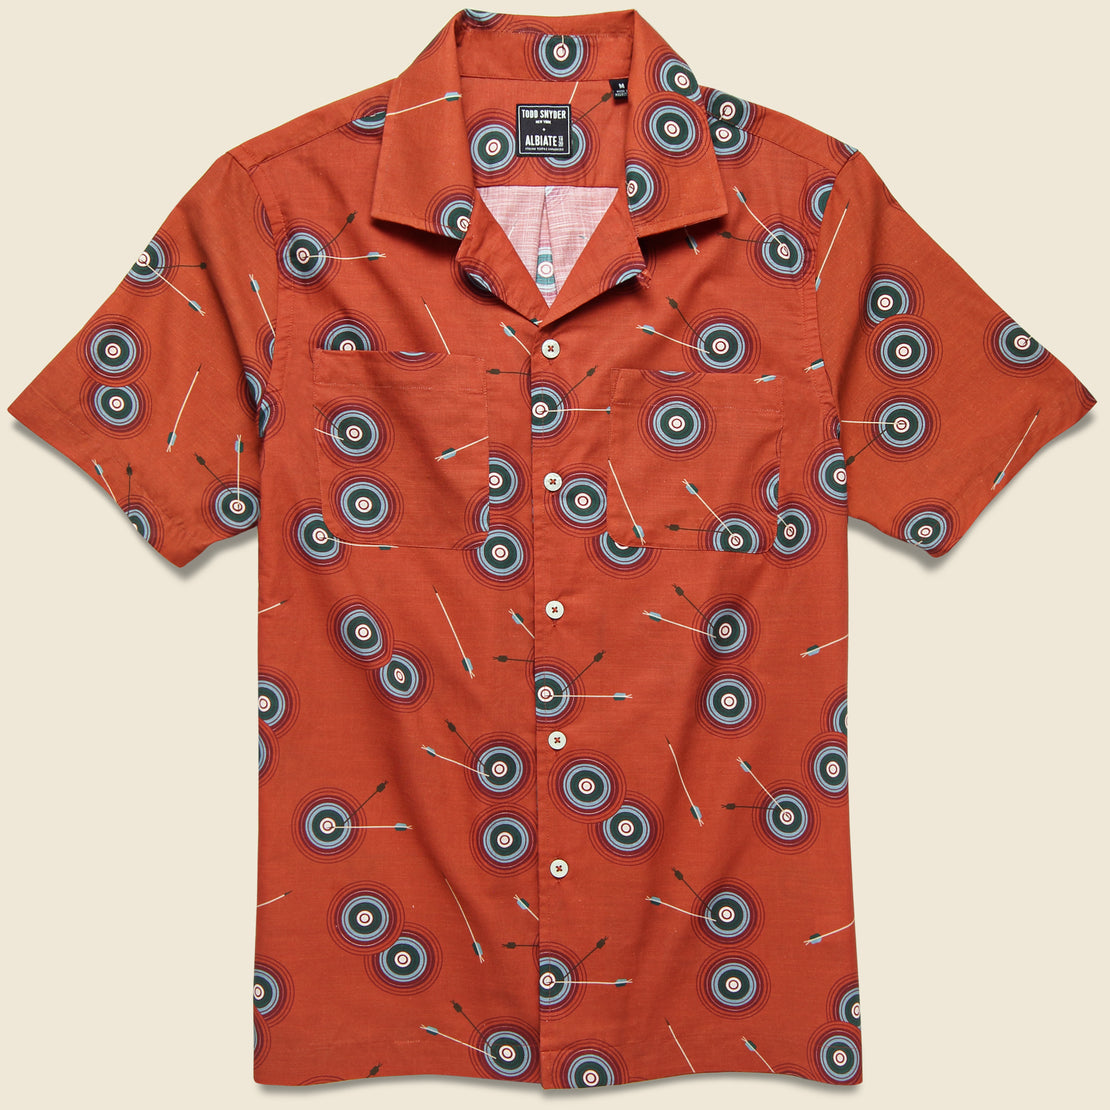 Todd Snyder Bullseye Camp Shirt - Clay